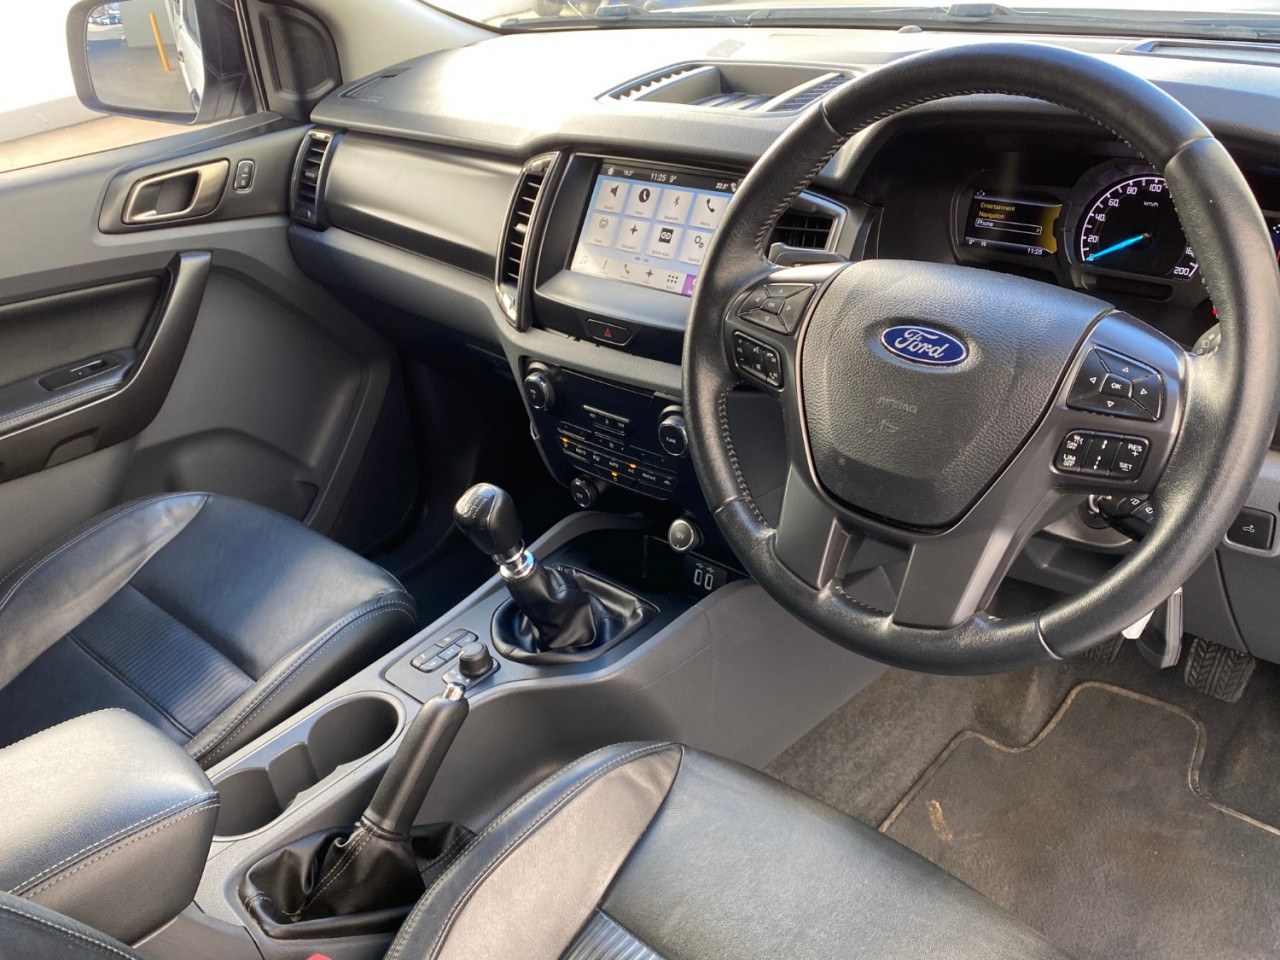 2017 Ford Pxii Ranger Xlt Crew Cab Pick Up 4x4 3.2 PX MKII XLT Utility